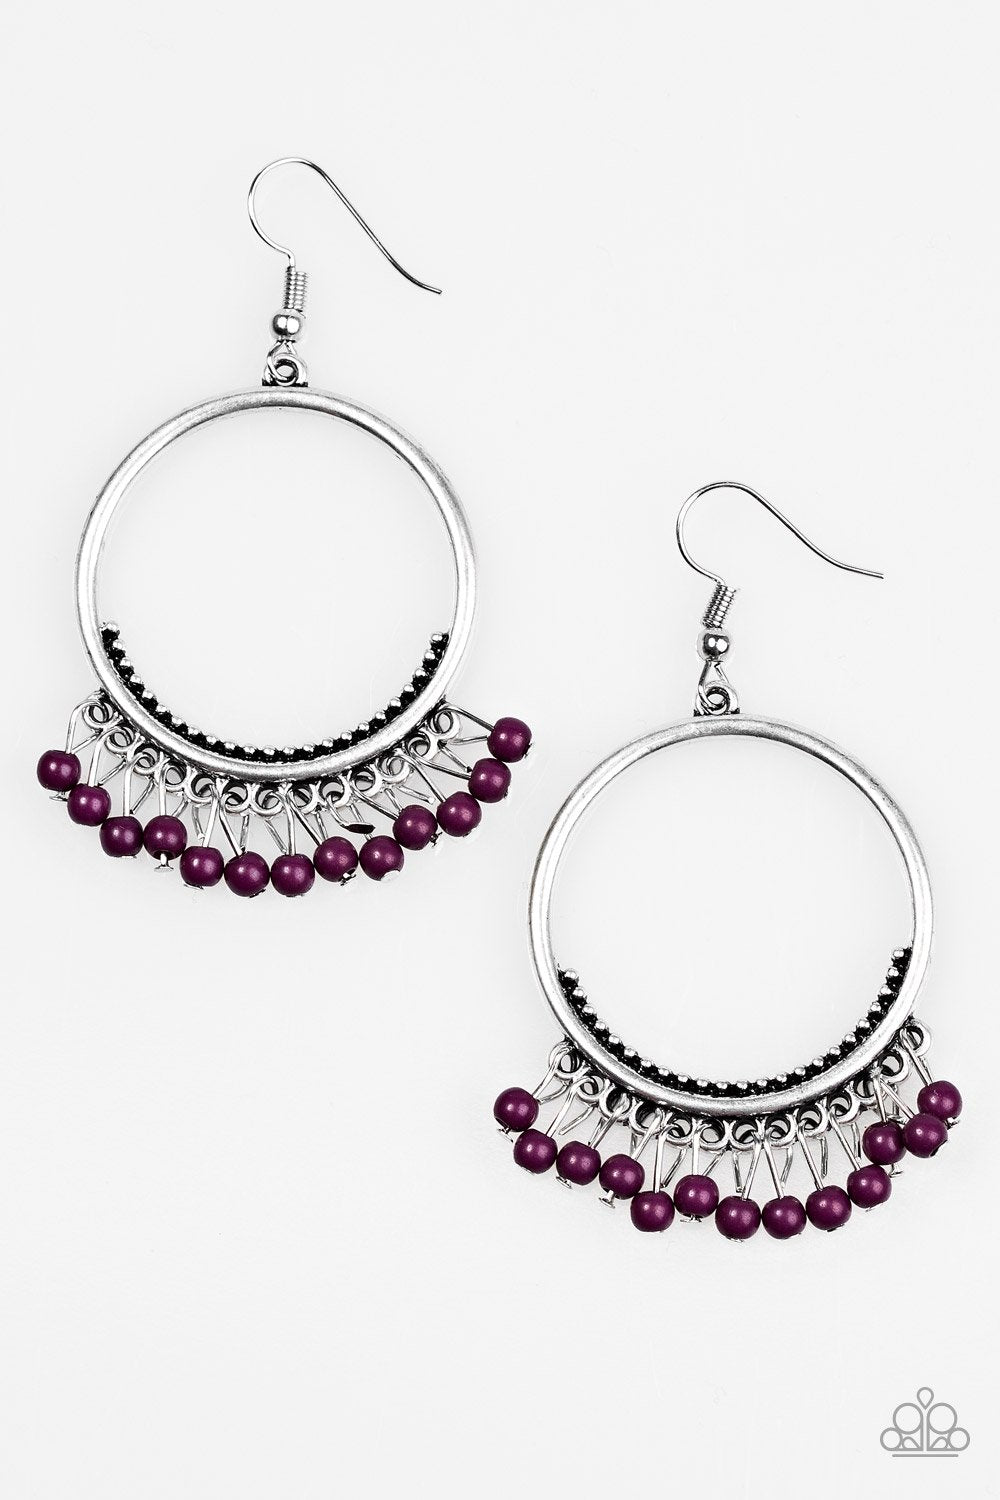 Paparazzi Accessories ~ The World Is A Jungle - Purple